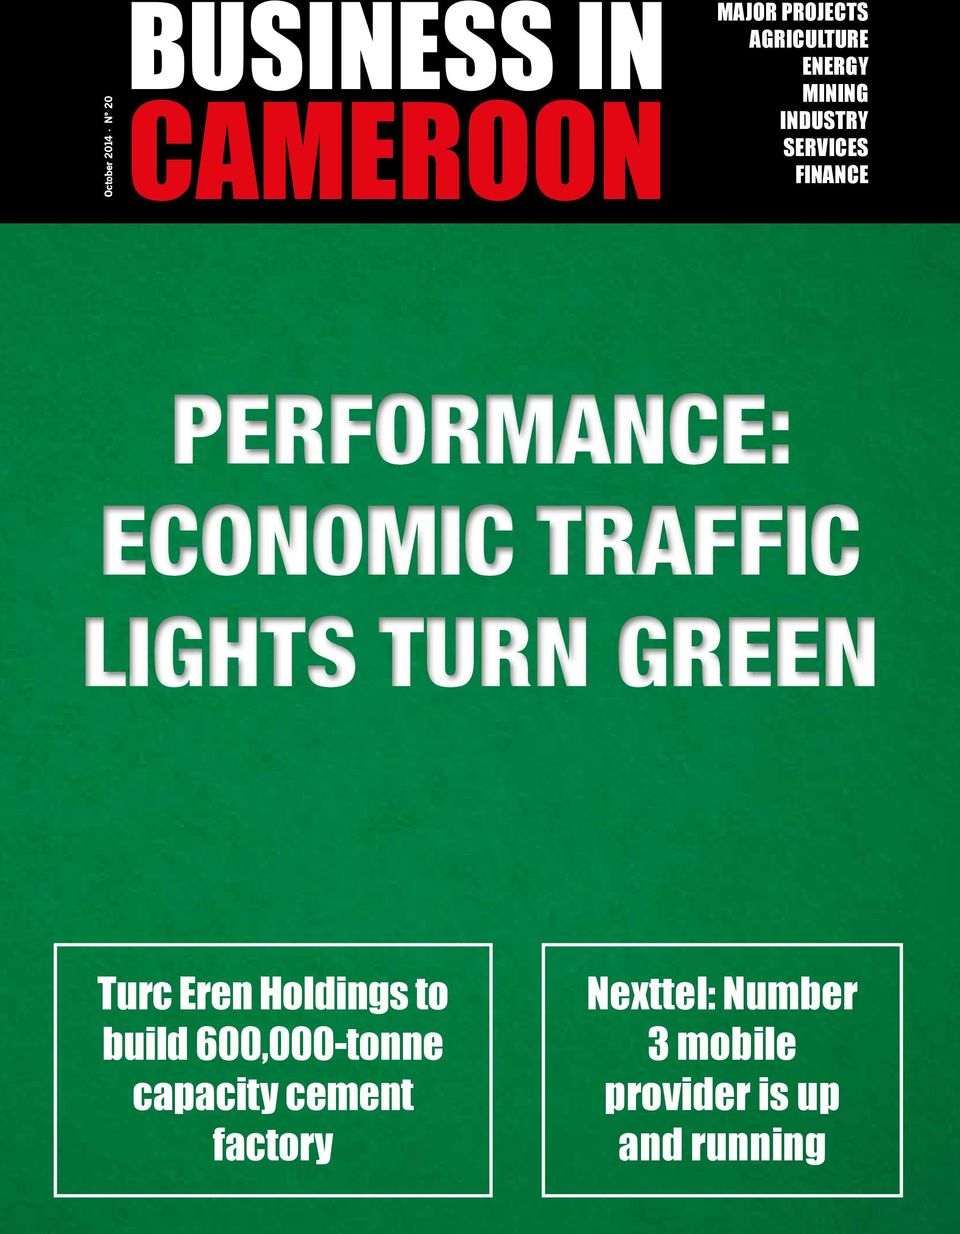 TRAFFIC LIGHTS TURN GREEN Turc Eren Holdings to build 600,000-tonne